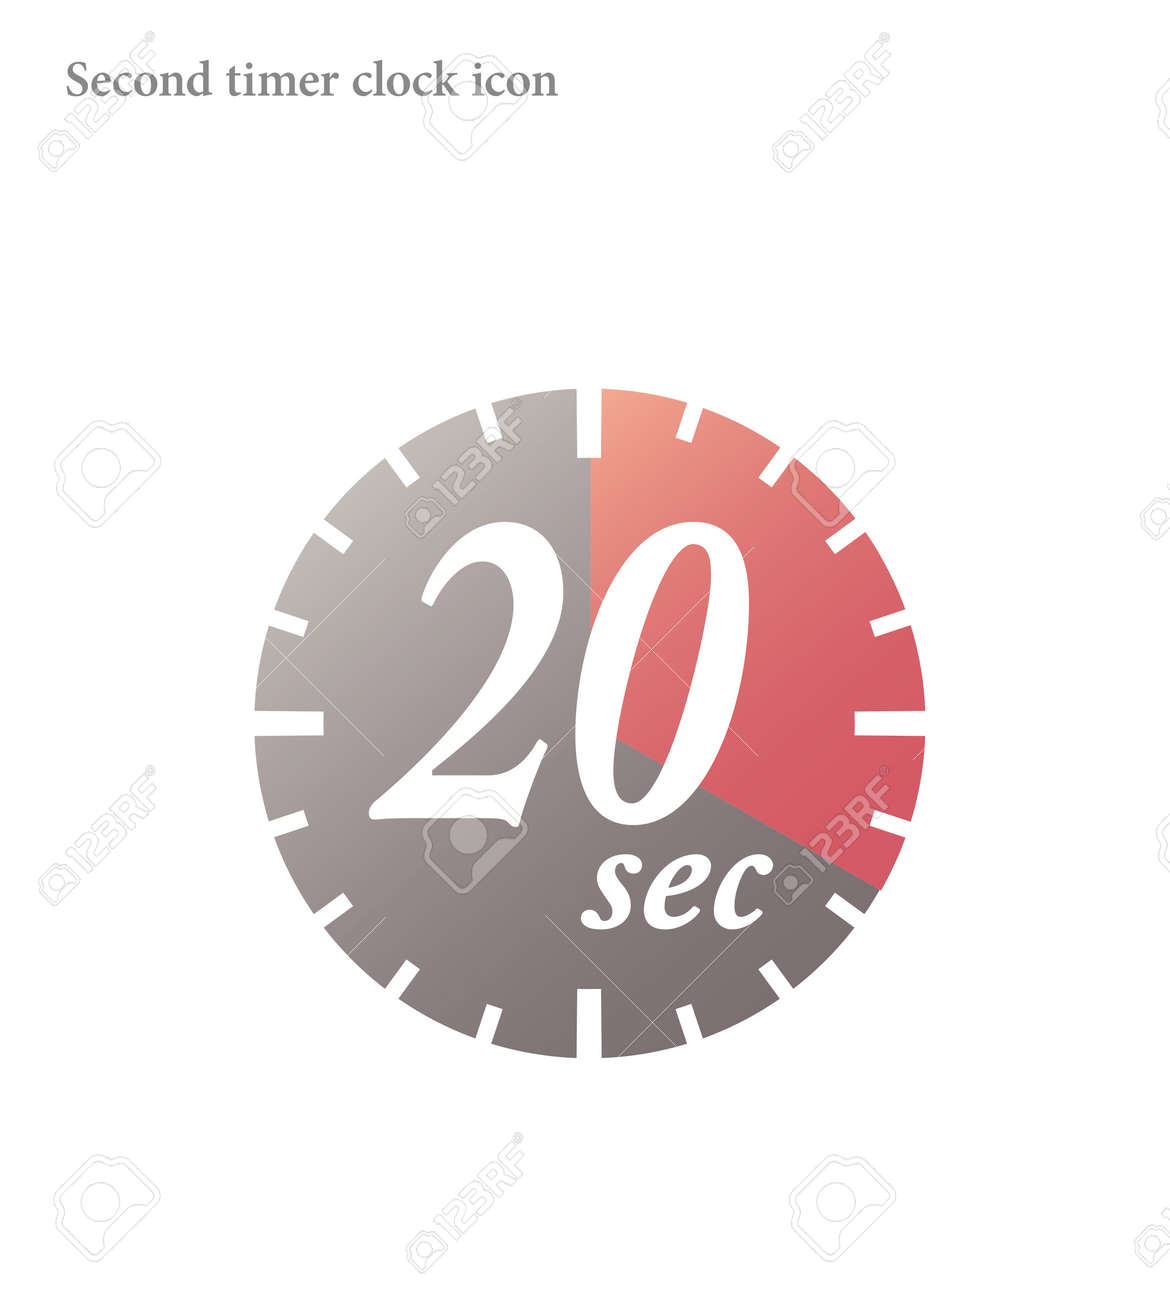 Simple 20 Seconds timer clock icon - 167854264